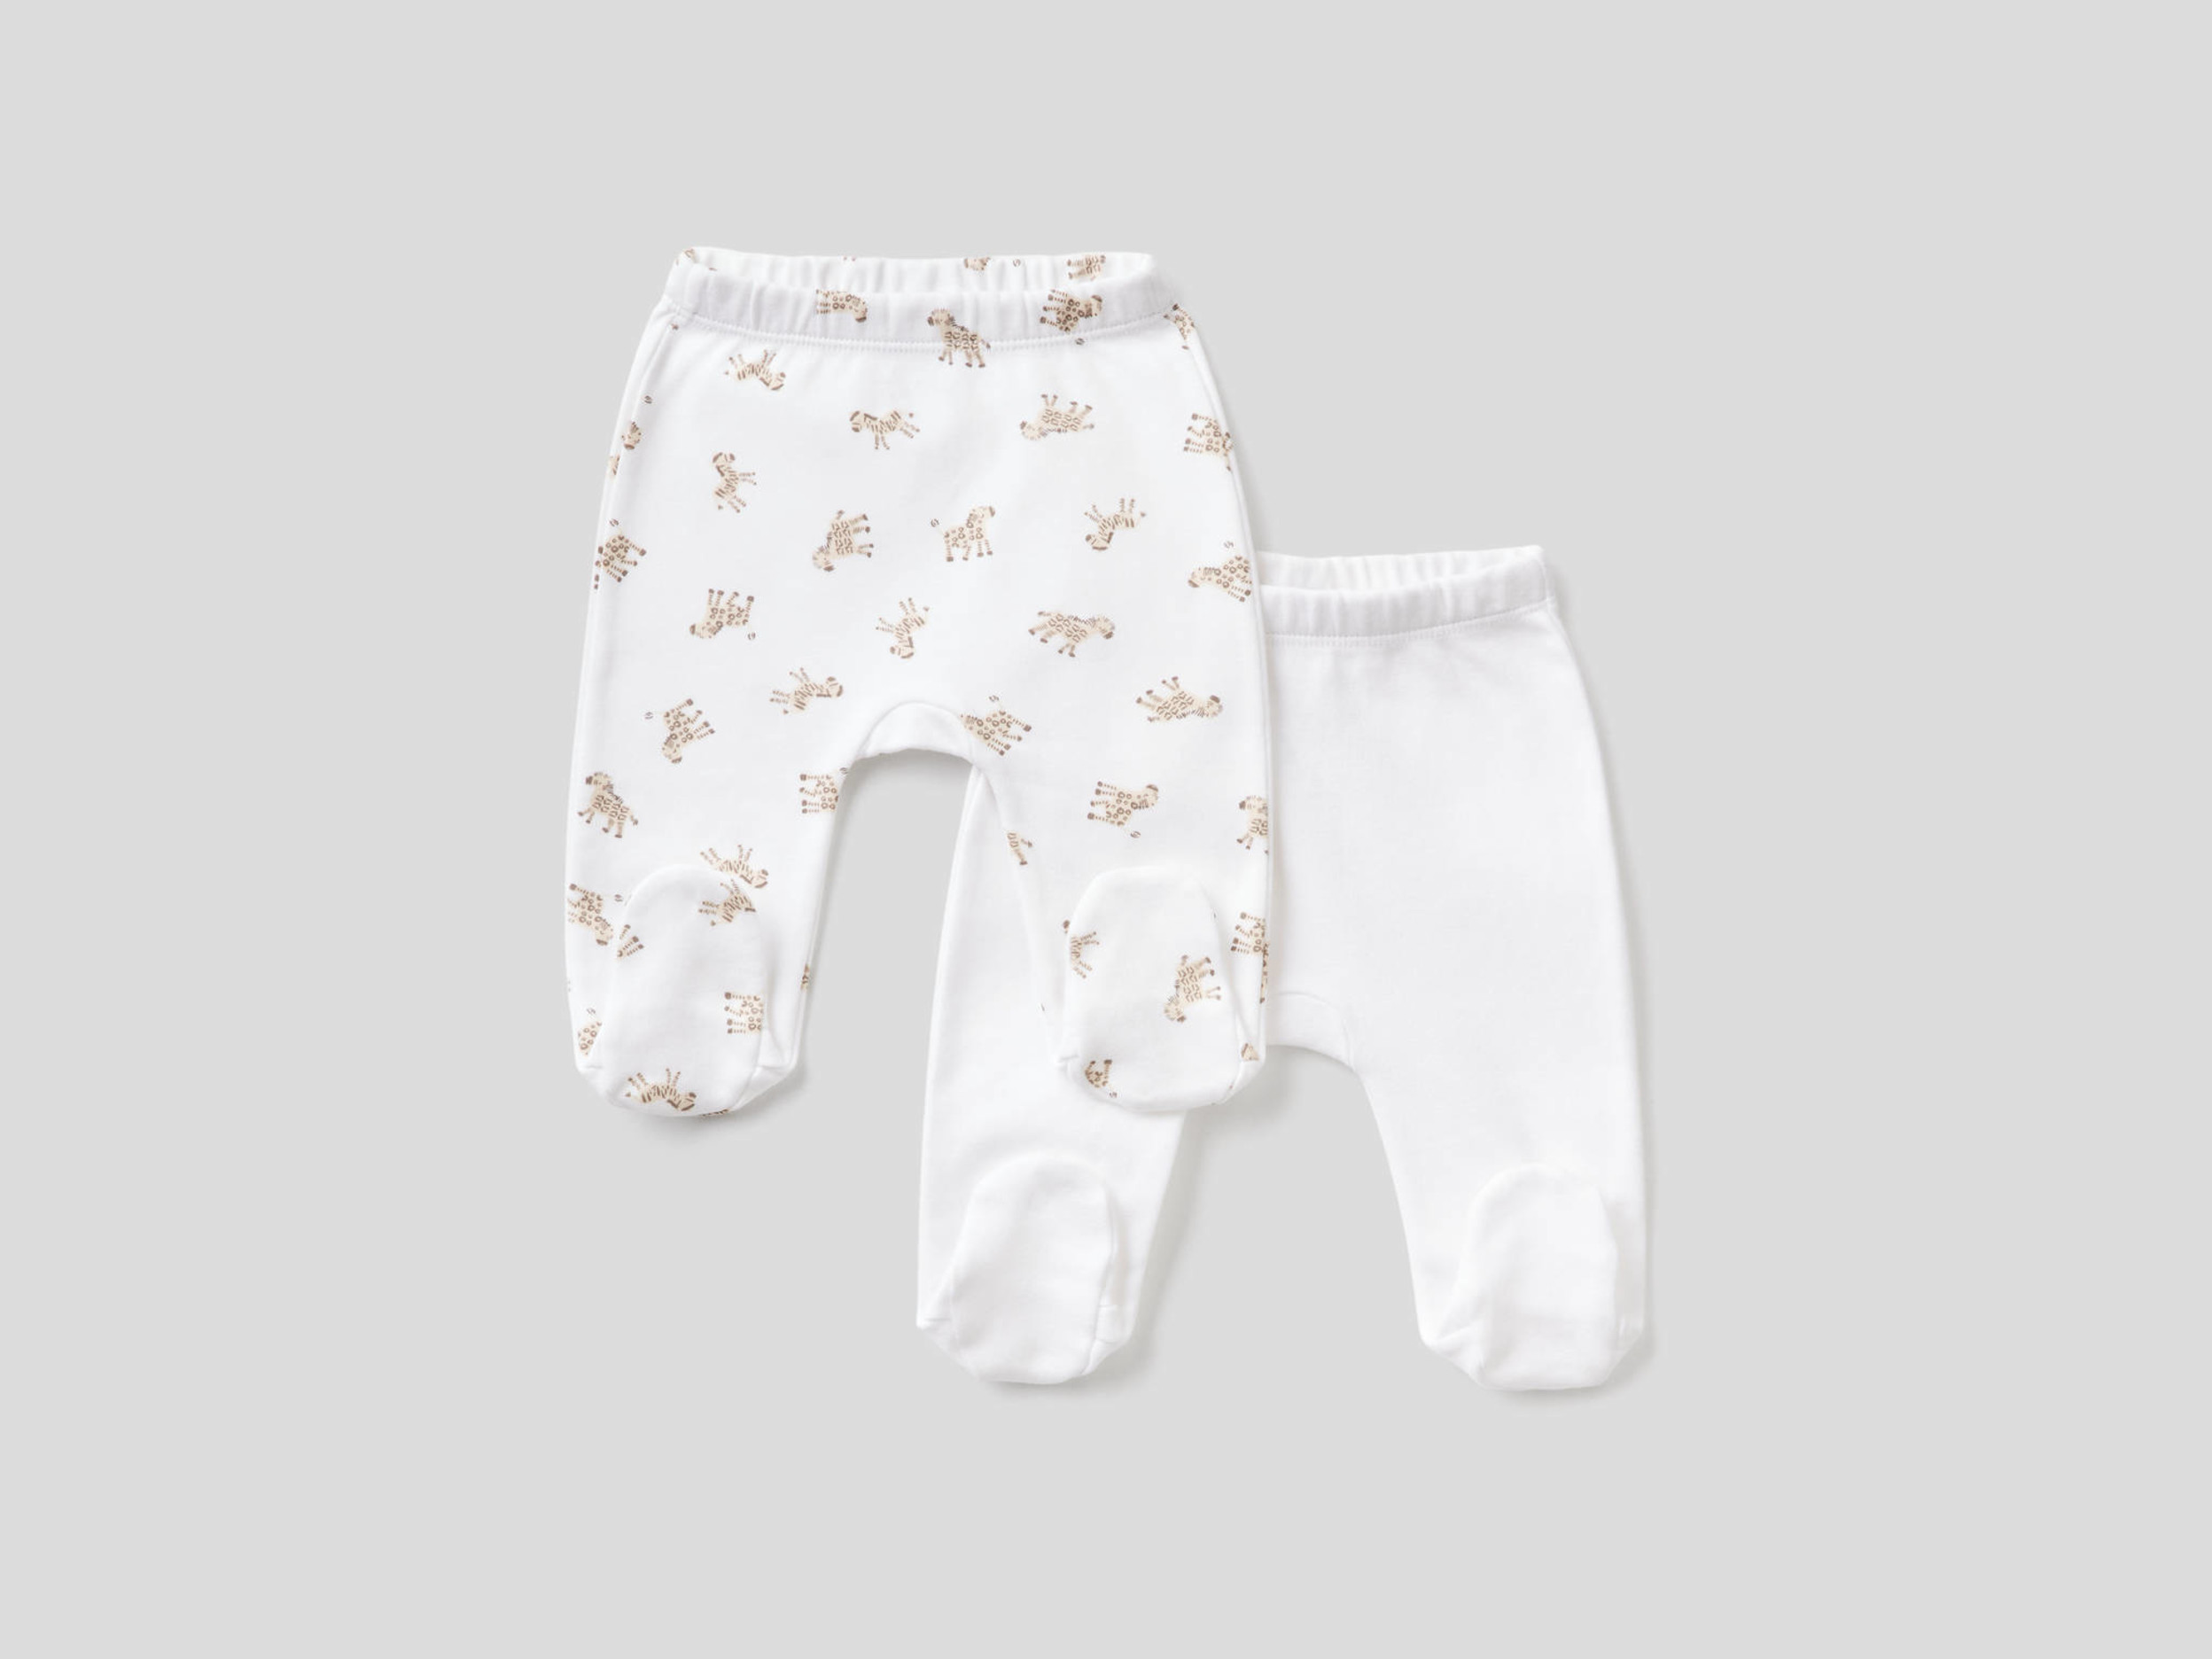 Benetton, Two Pairs Of Stirrup Trousers In Organic Cotton, size , White, Kids